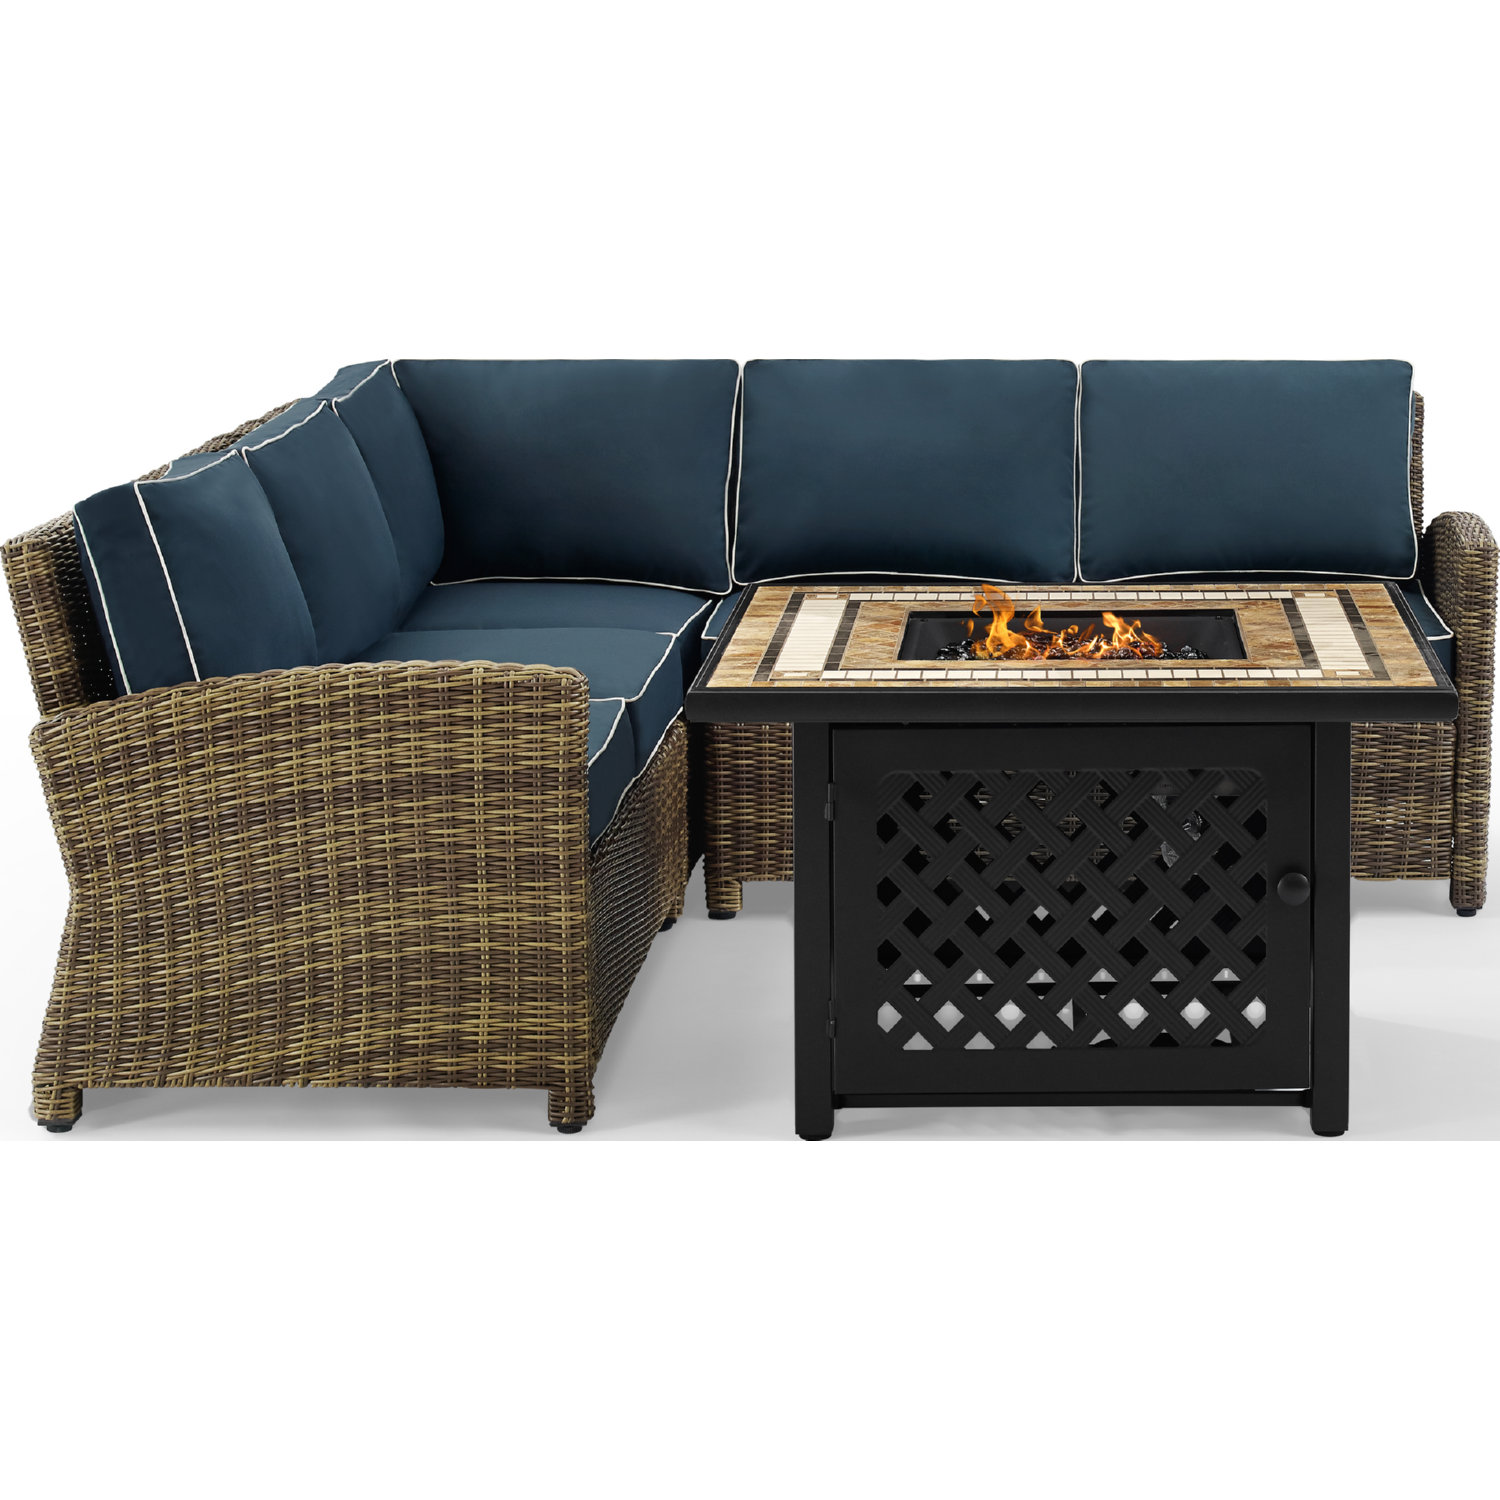 Bradenton 4 Piece Outdoor Sectional Sofa Set in PE Wicker w/ Navy Cushions  by Crosley